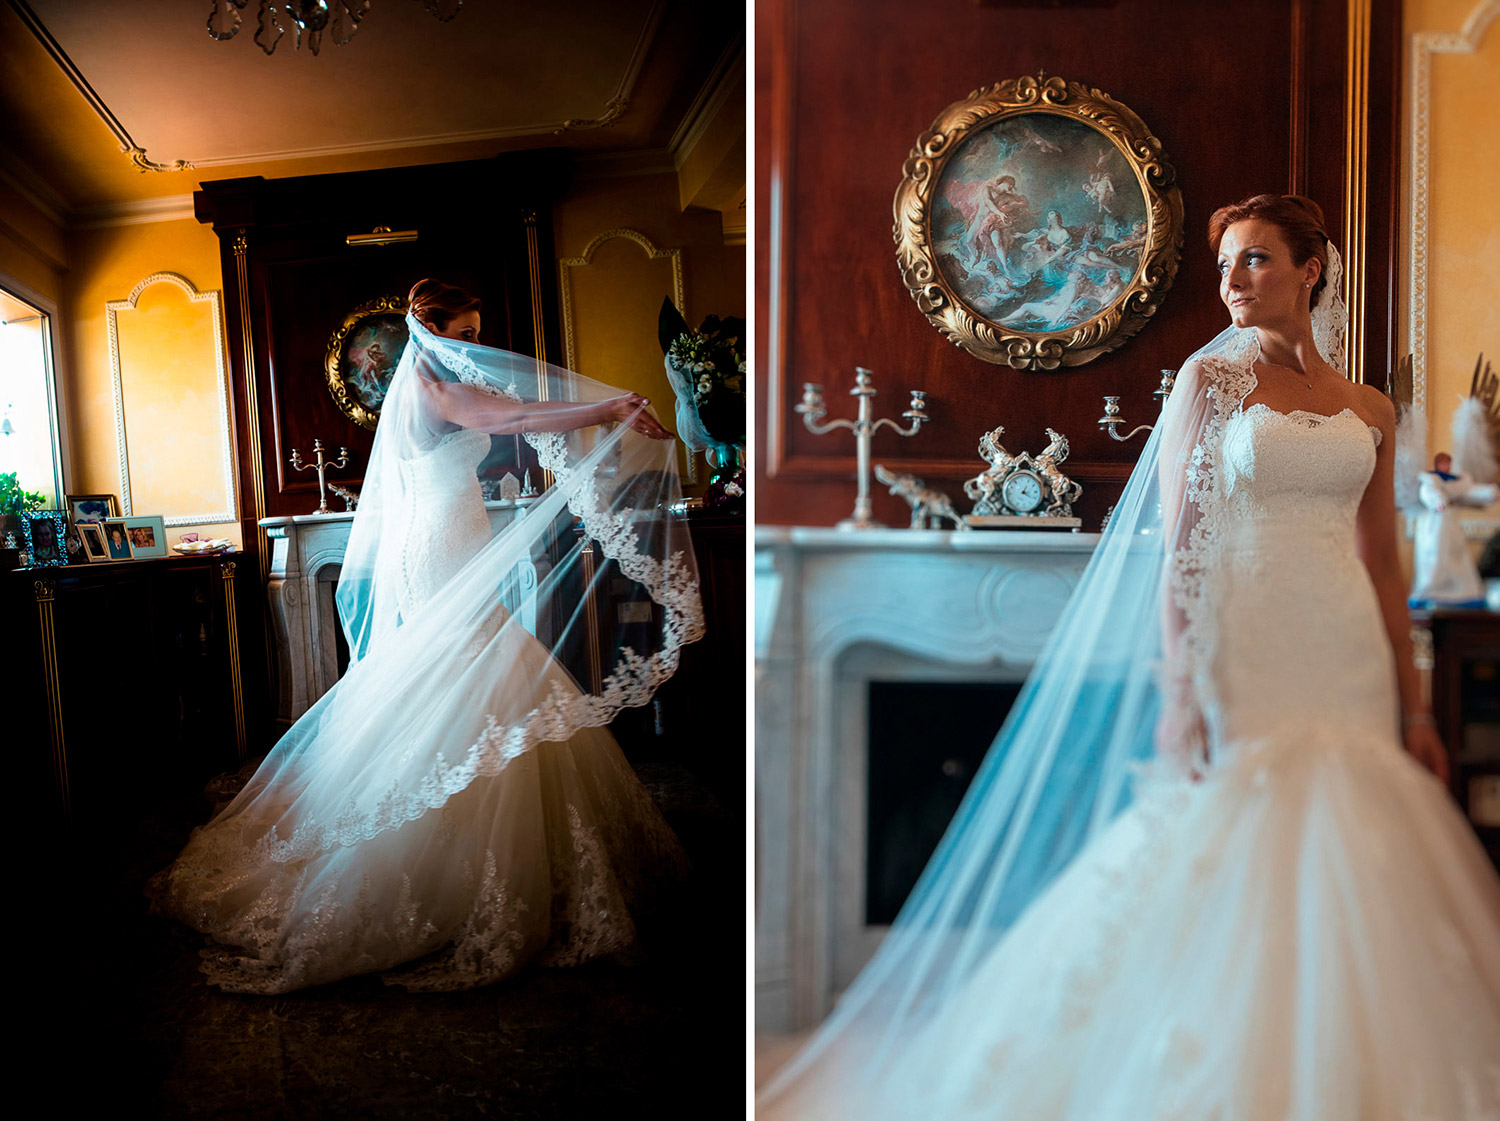 Bride Portrait in Nicol spose dress